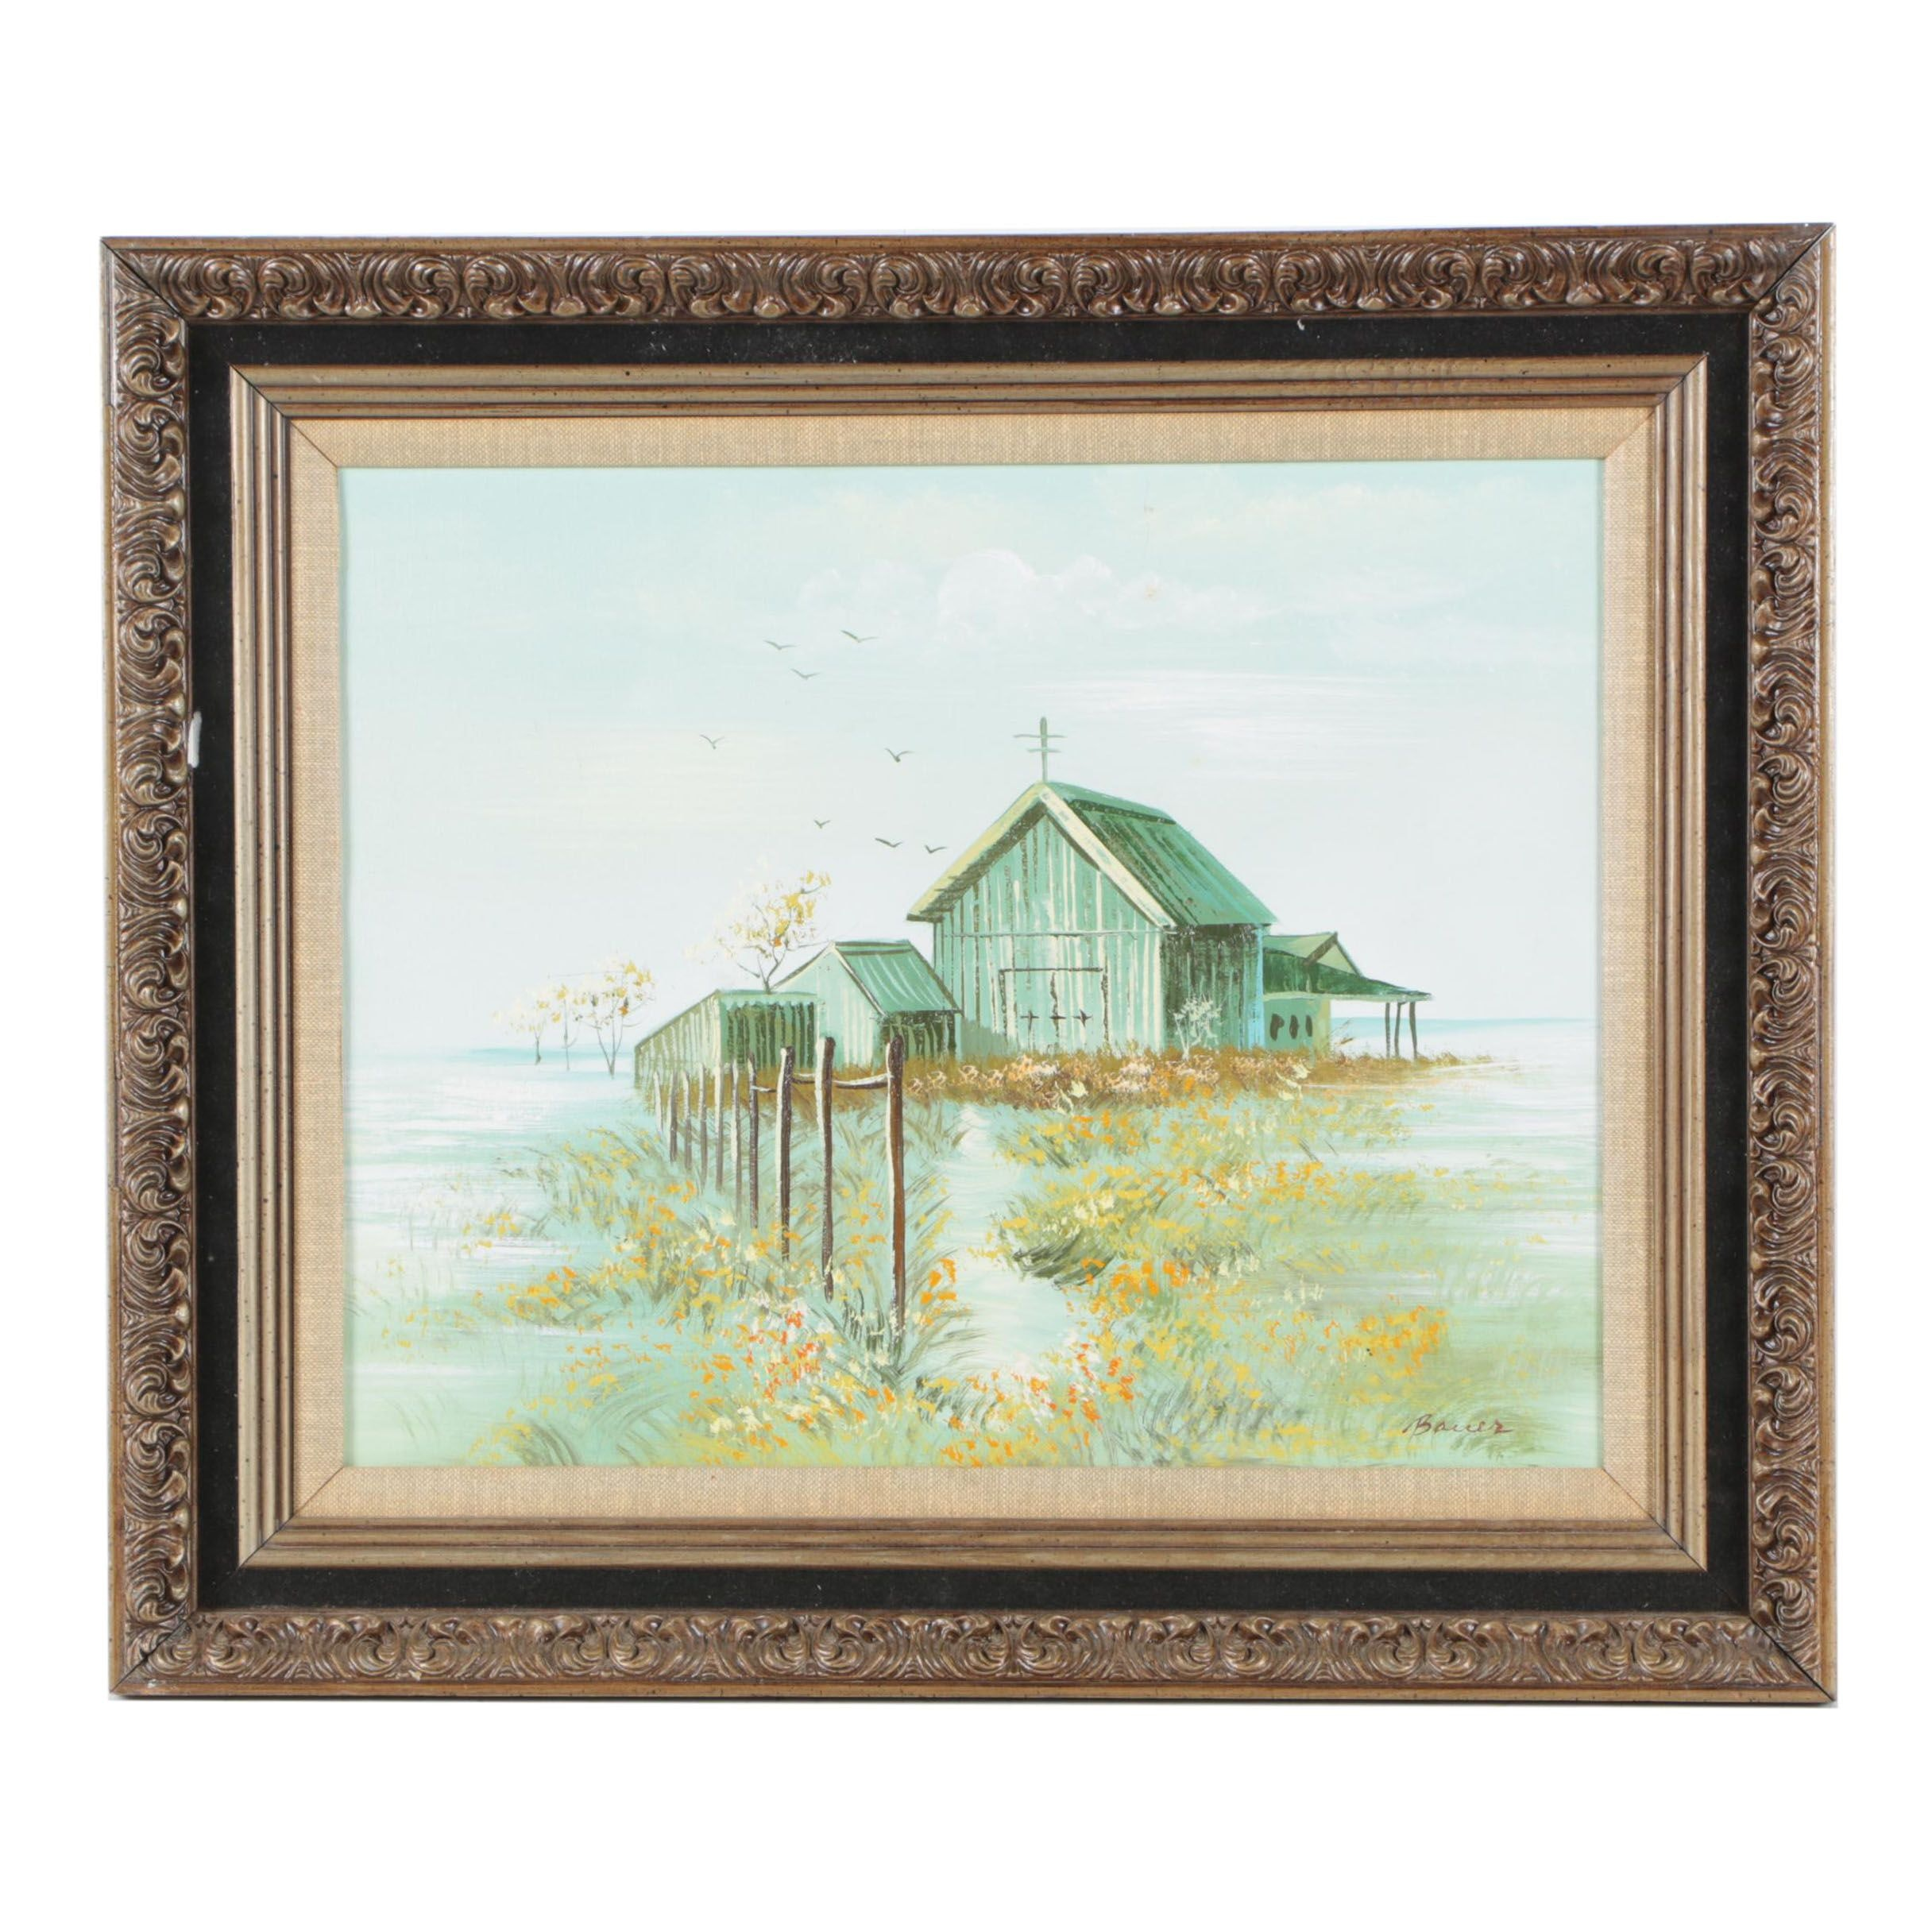 Bauer Oil Painting on Canvas of a Barn